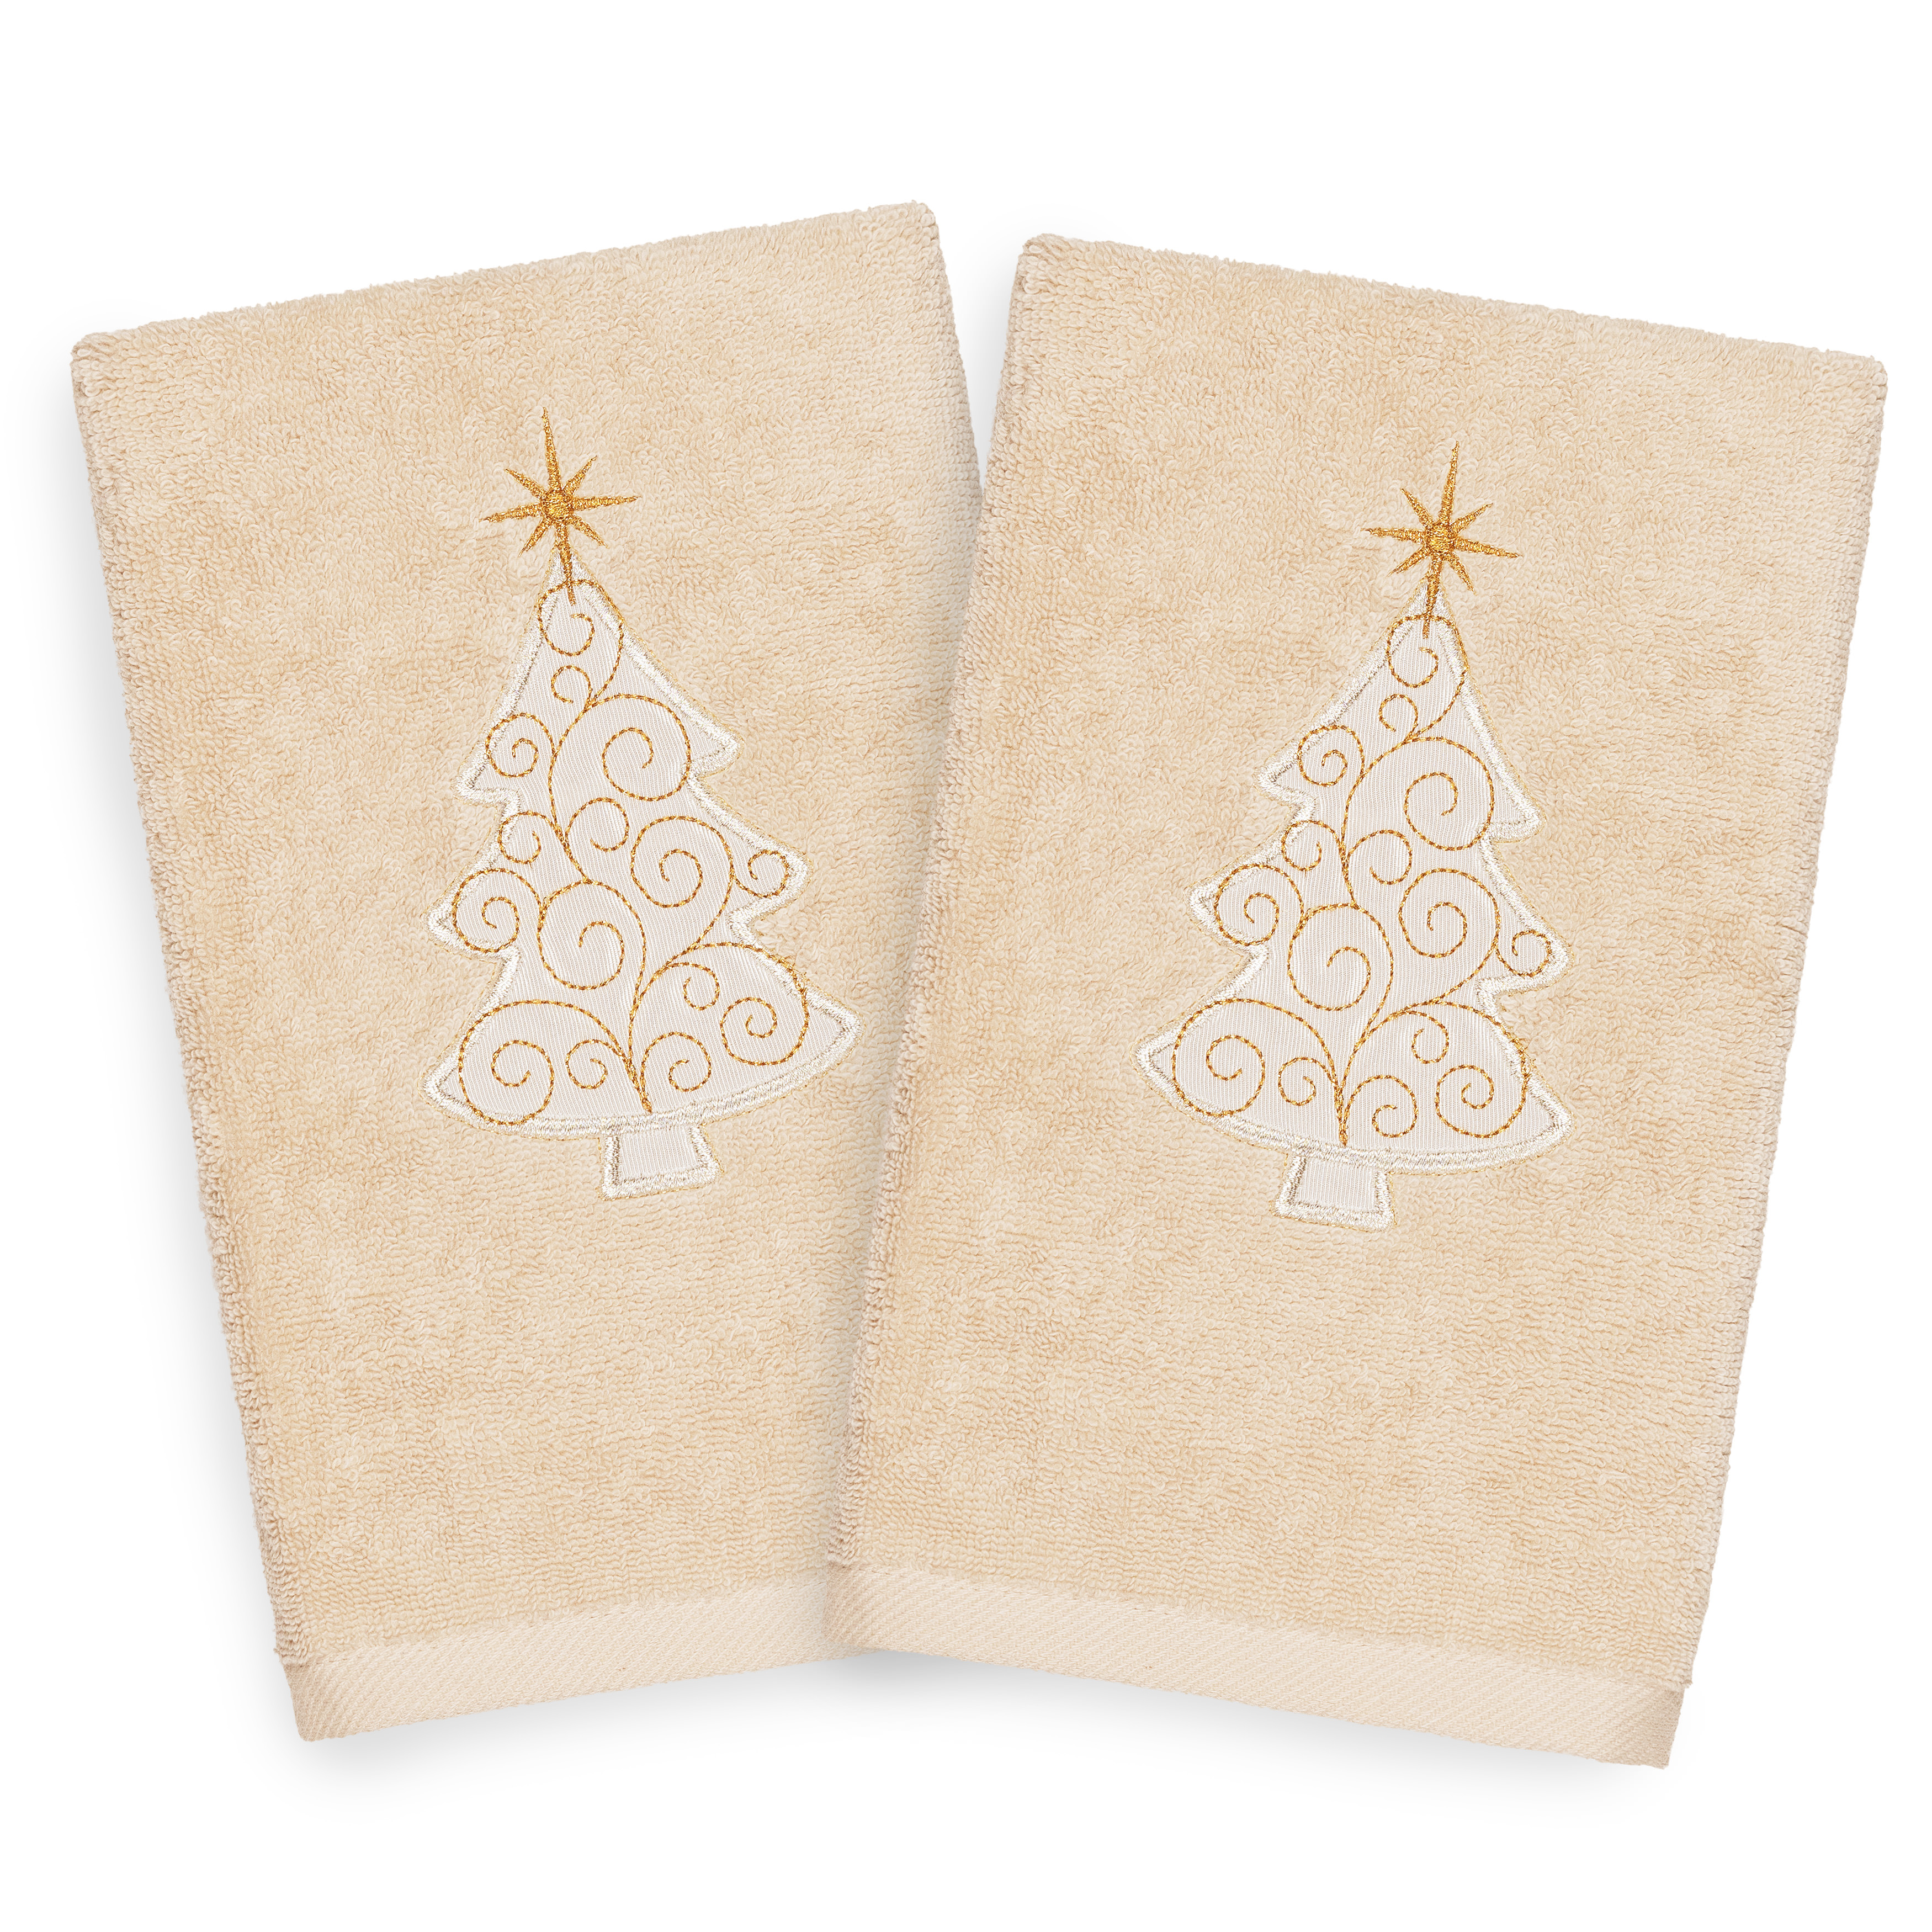 Christmas Kitchen Towels At Walmart: Linum Home Christmas Scroll Tree Party Embroidered Beige